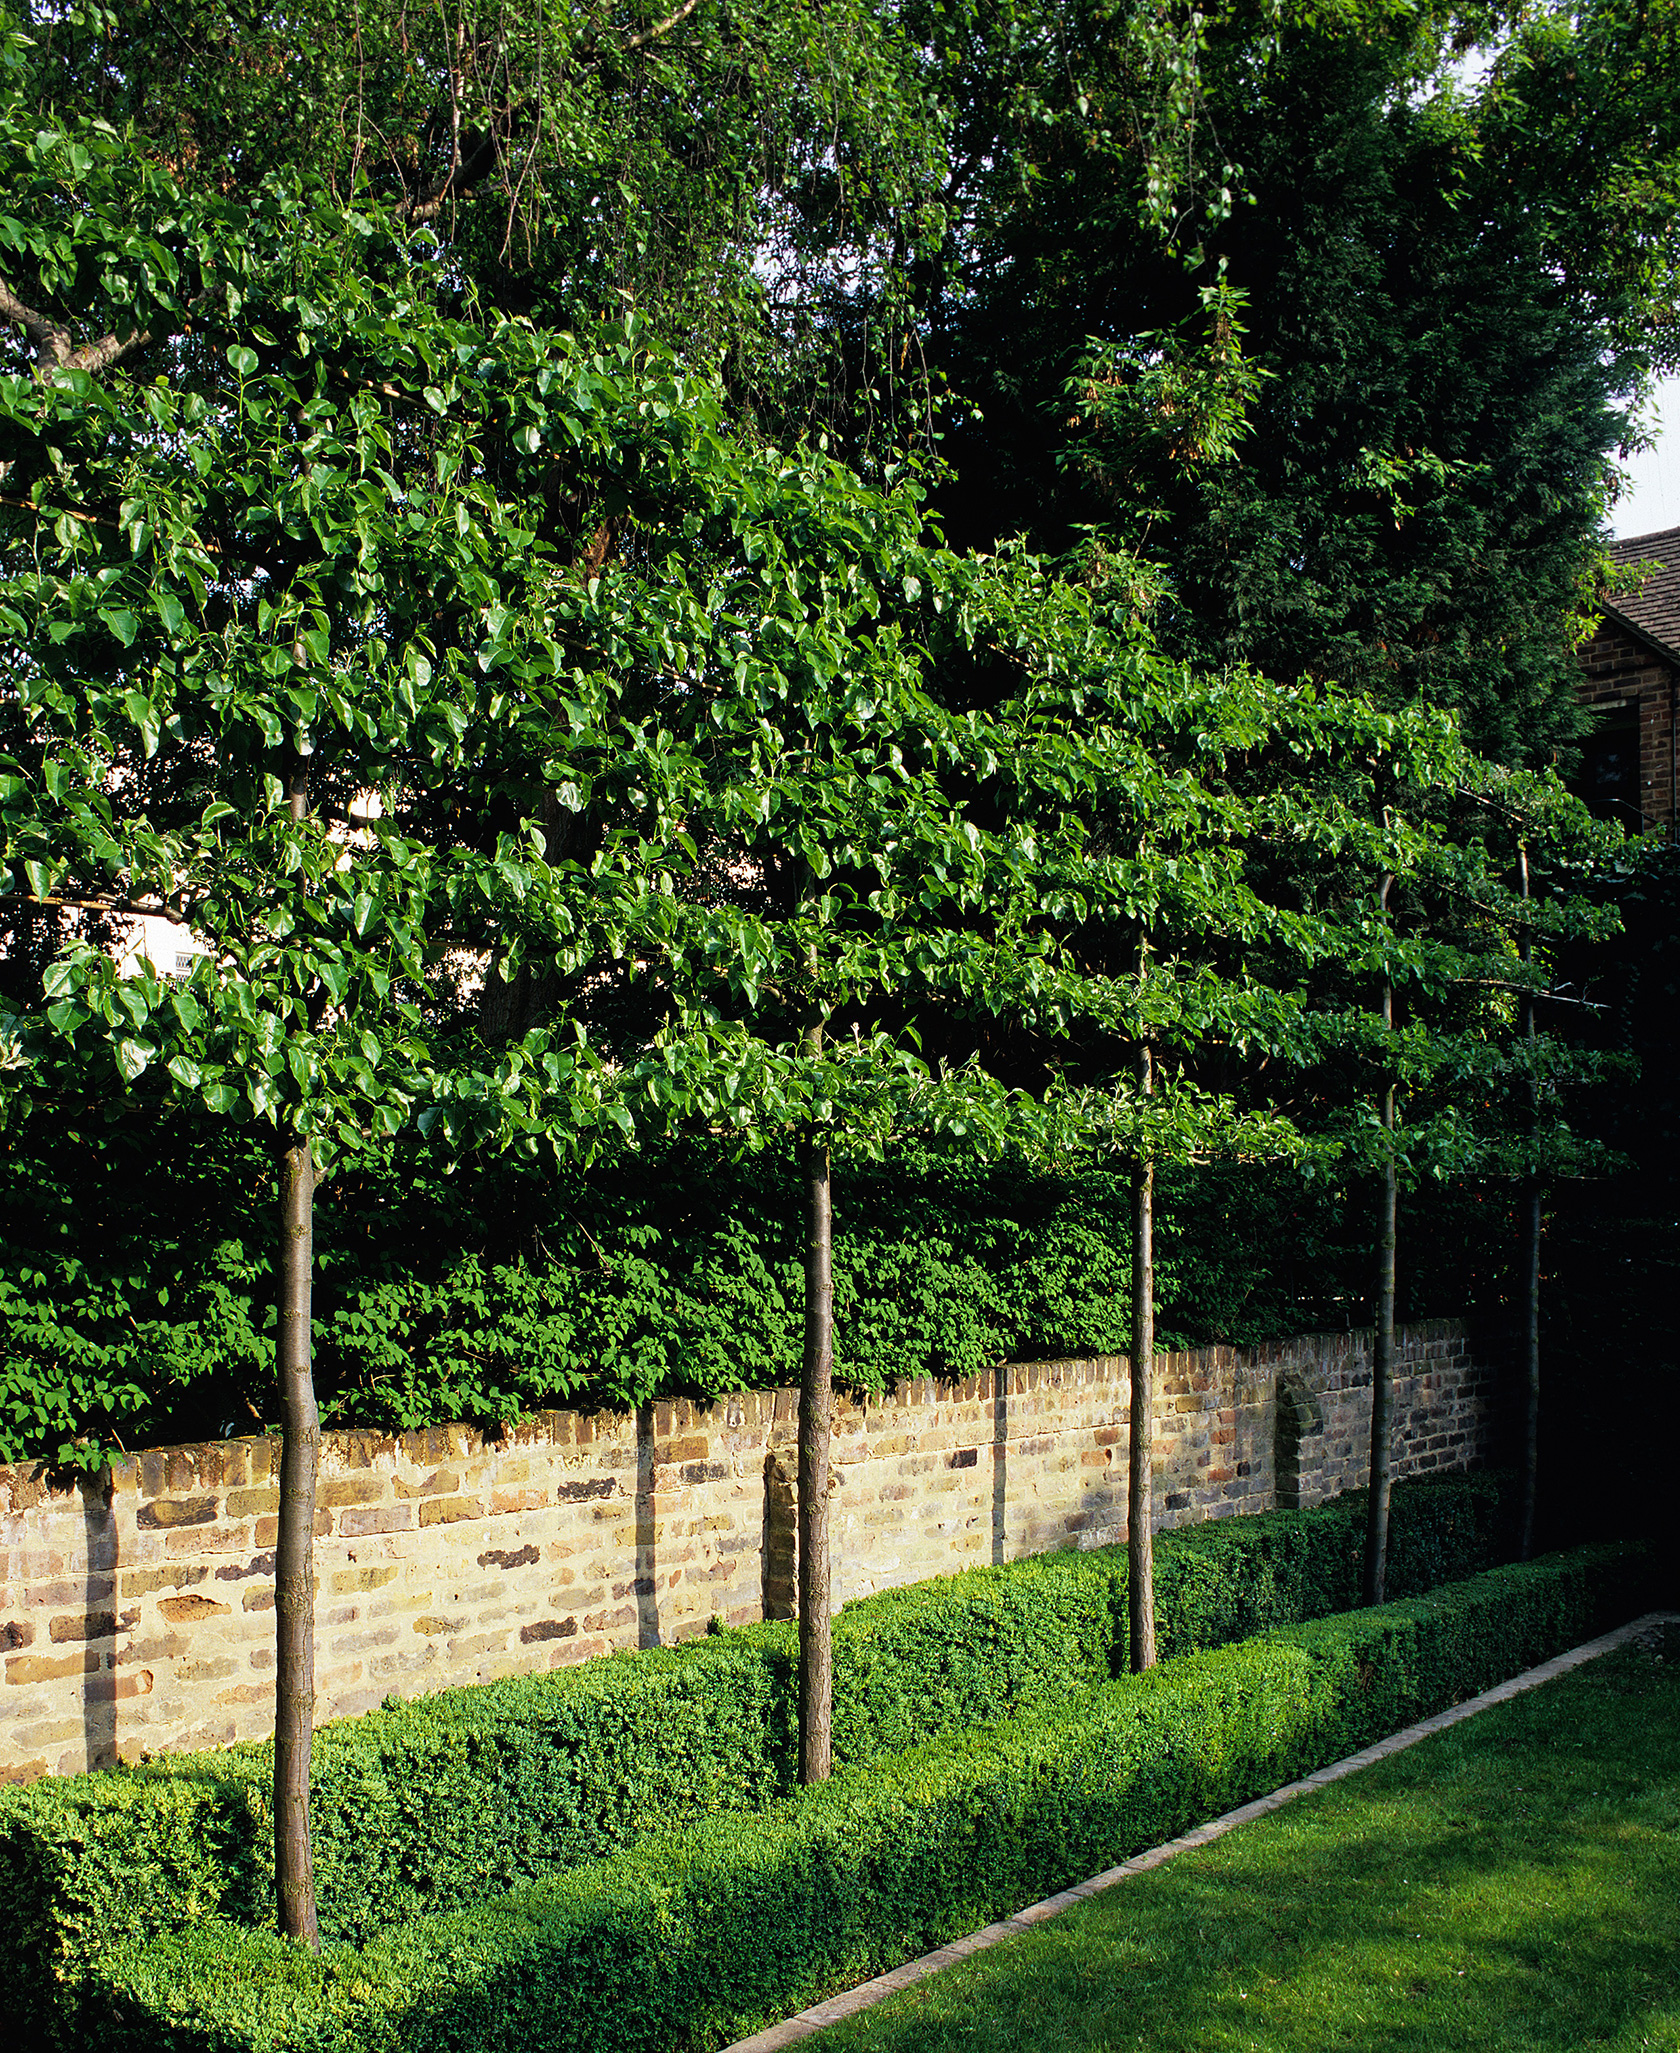 Landscaping Screening Trees : Luciano giubbilei kensington gardens